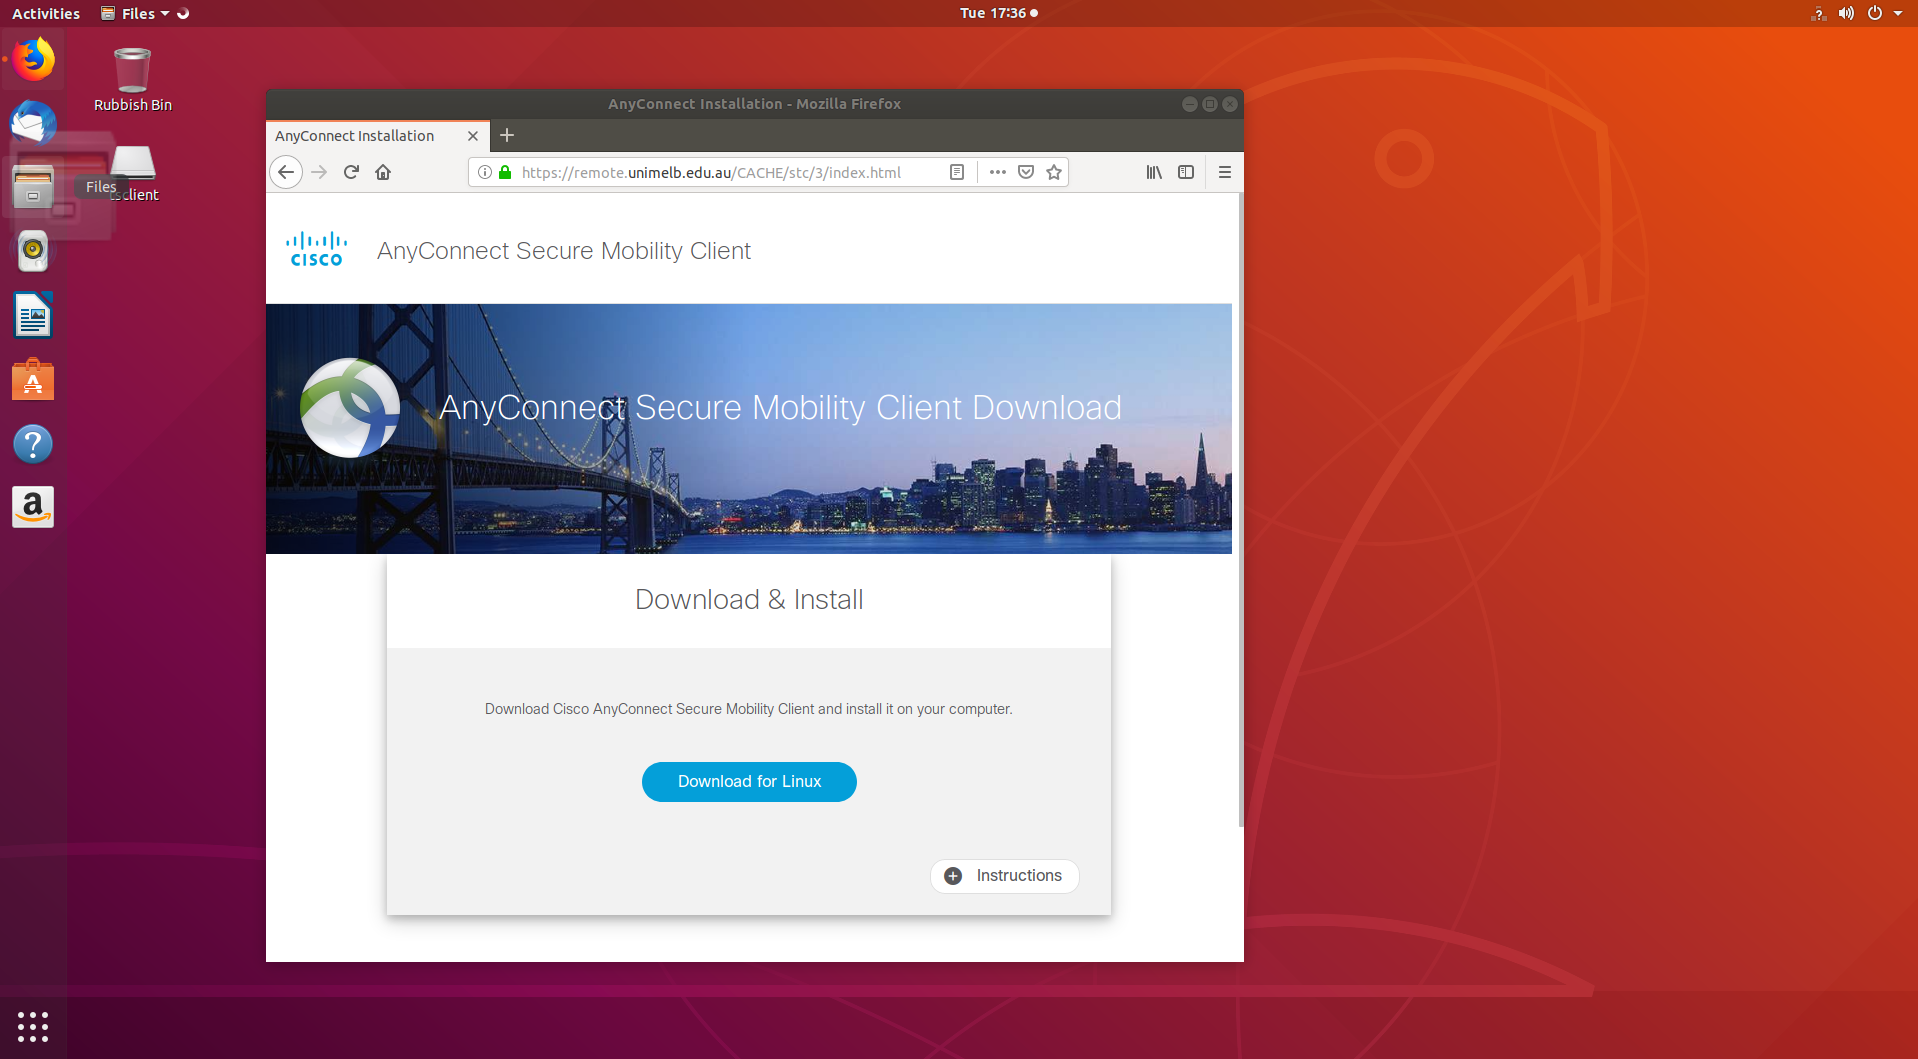 Install and Configure AnyConnect on Ubuntu for Unimelb Cisco